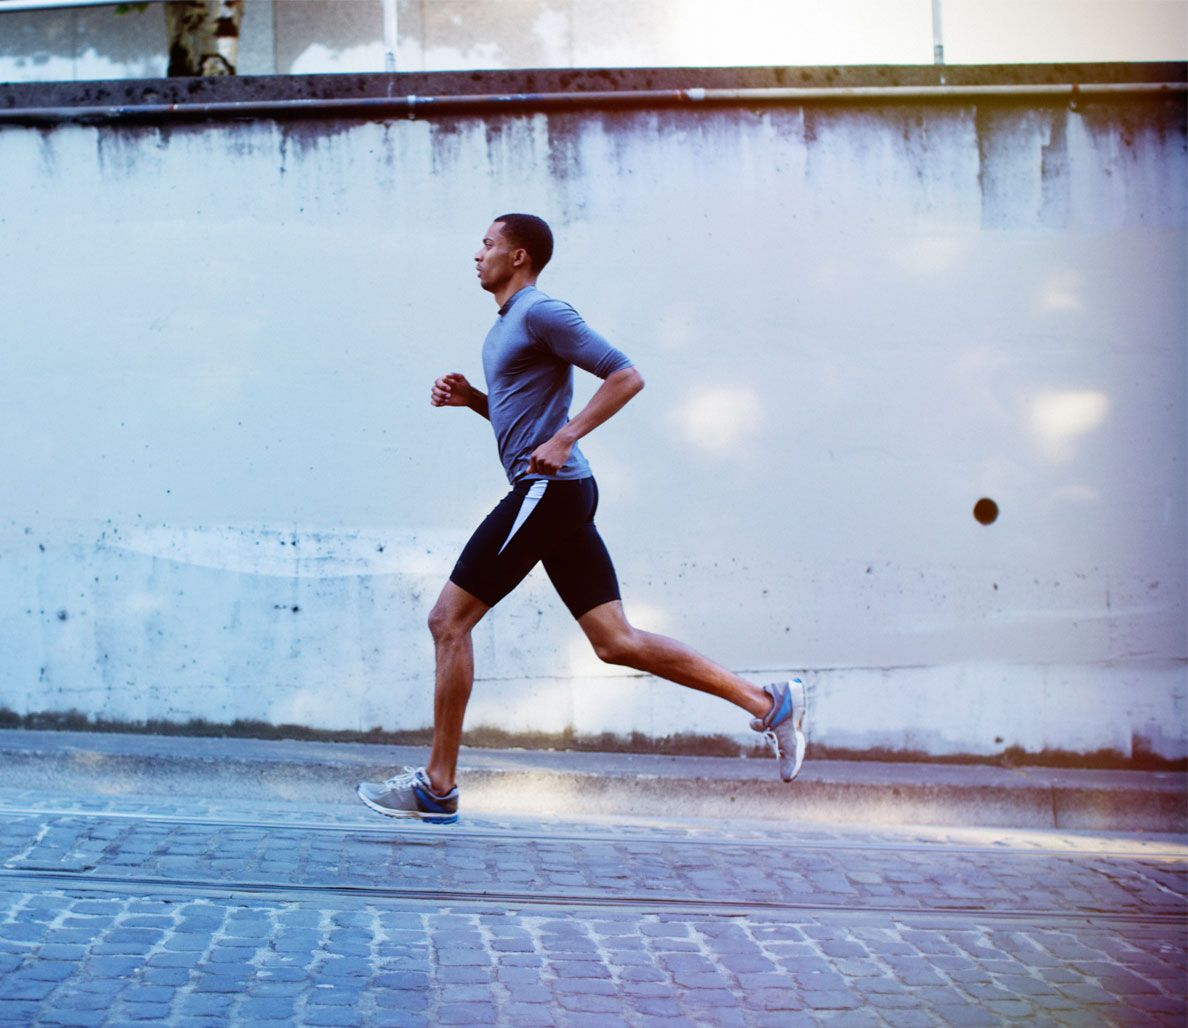 Spring Sports Guide The Runner's Performance Workout